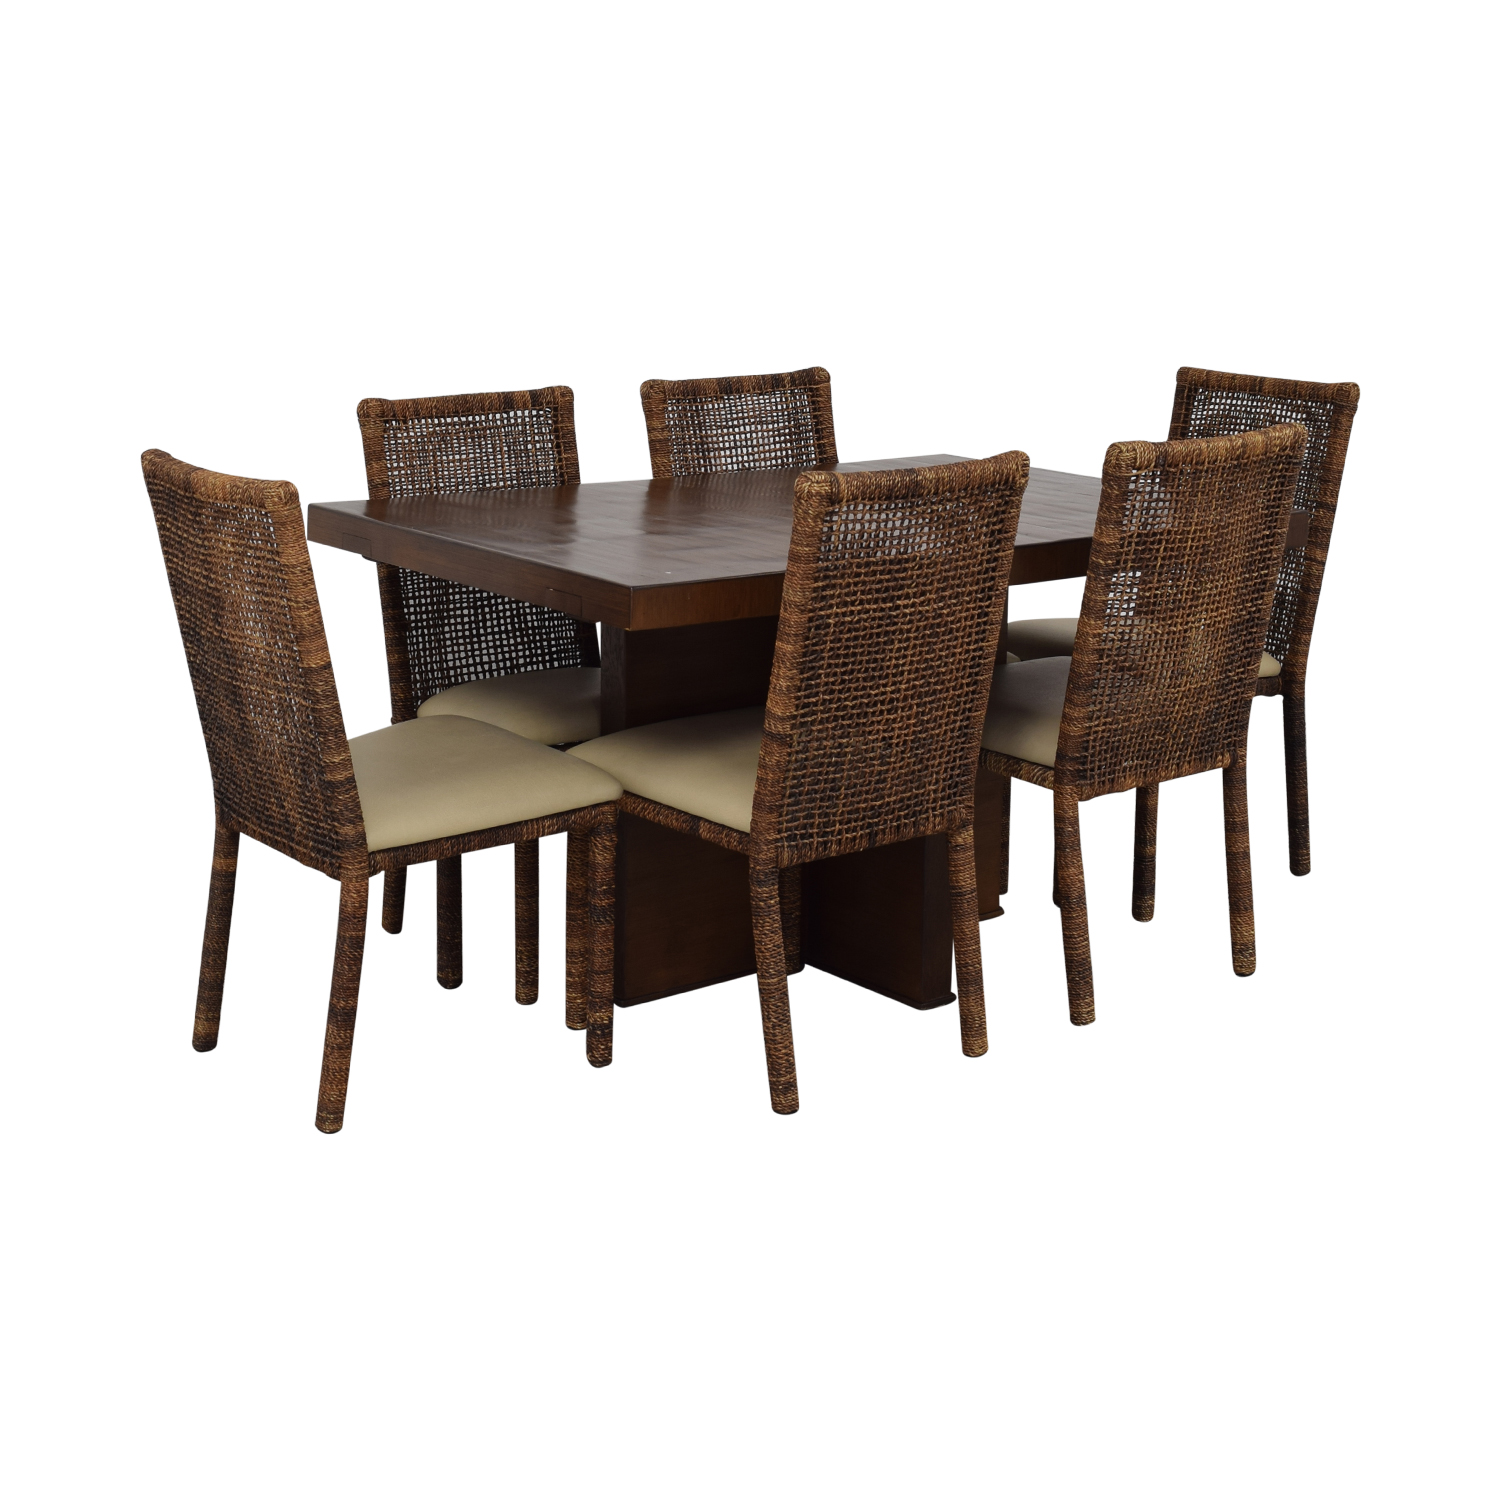 shop  Upholstered Wicker Dining Chairs With Extendable Table online